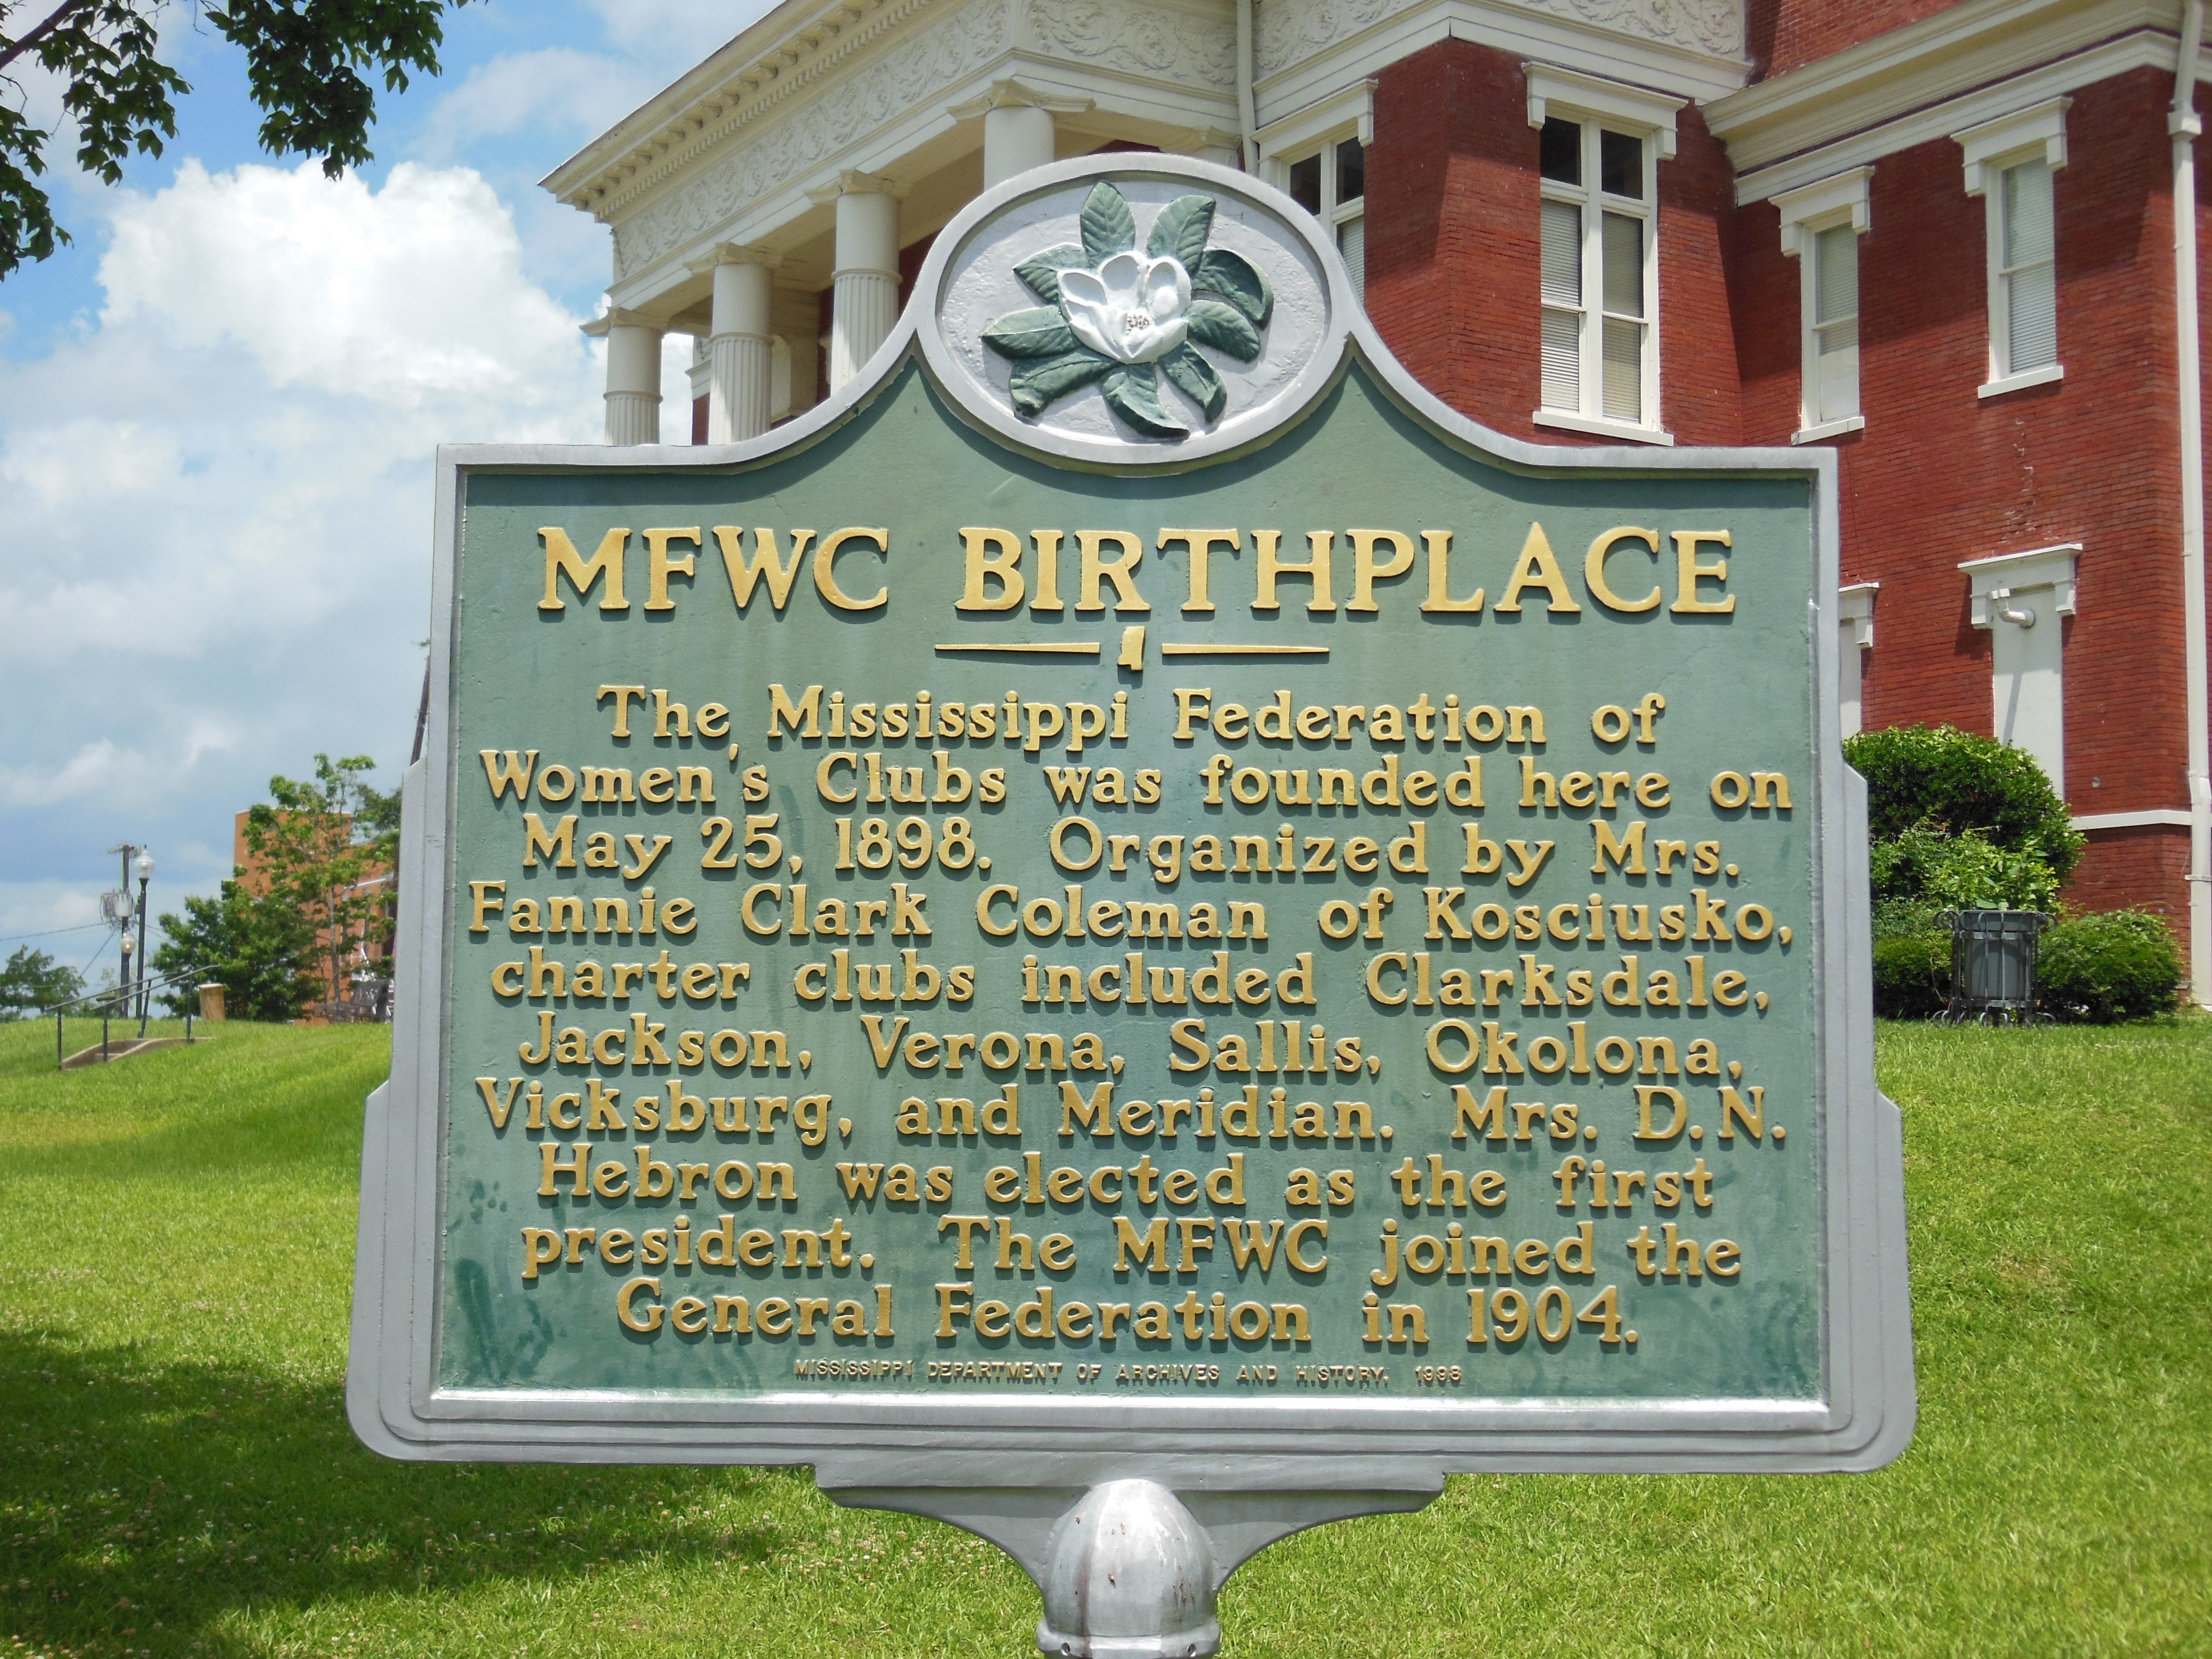 MFWC Birthplace Marker